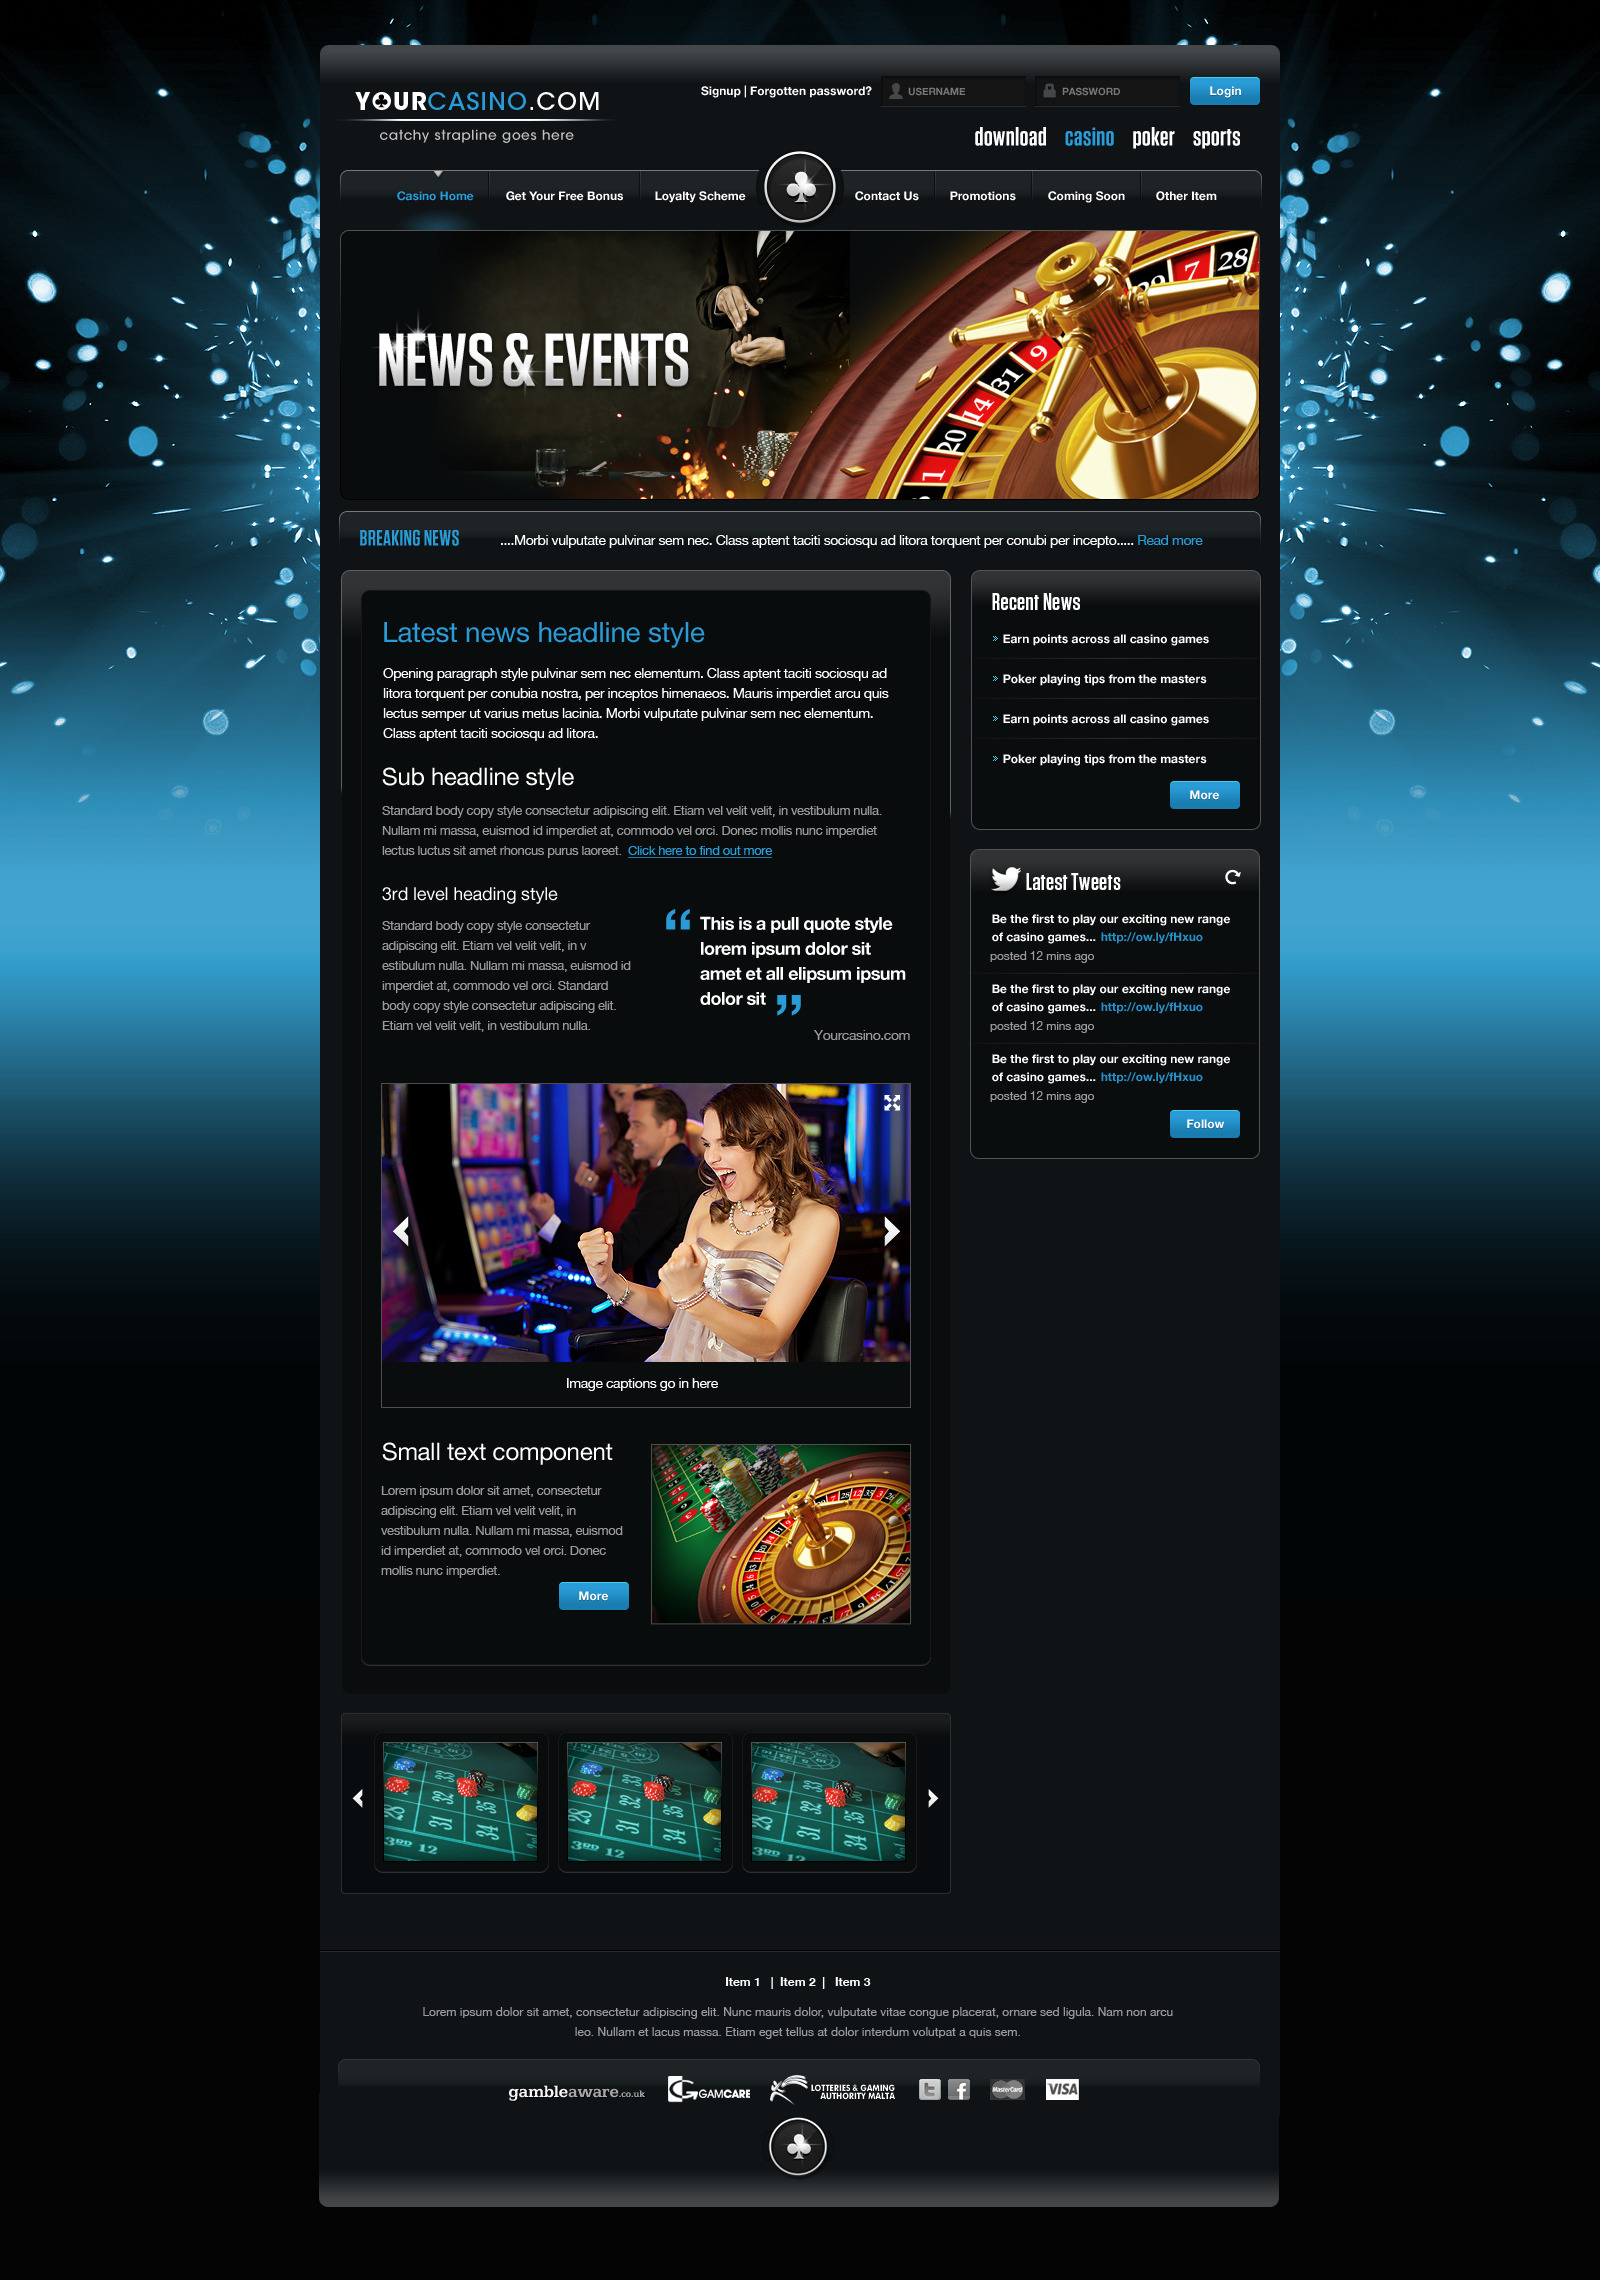 Casino site web gambling ideas for super bowl